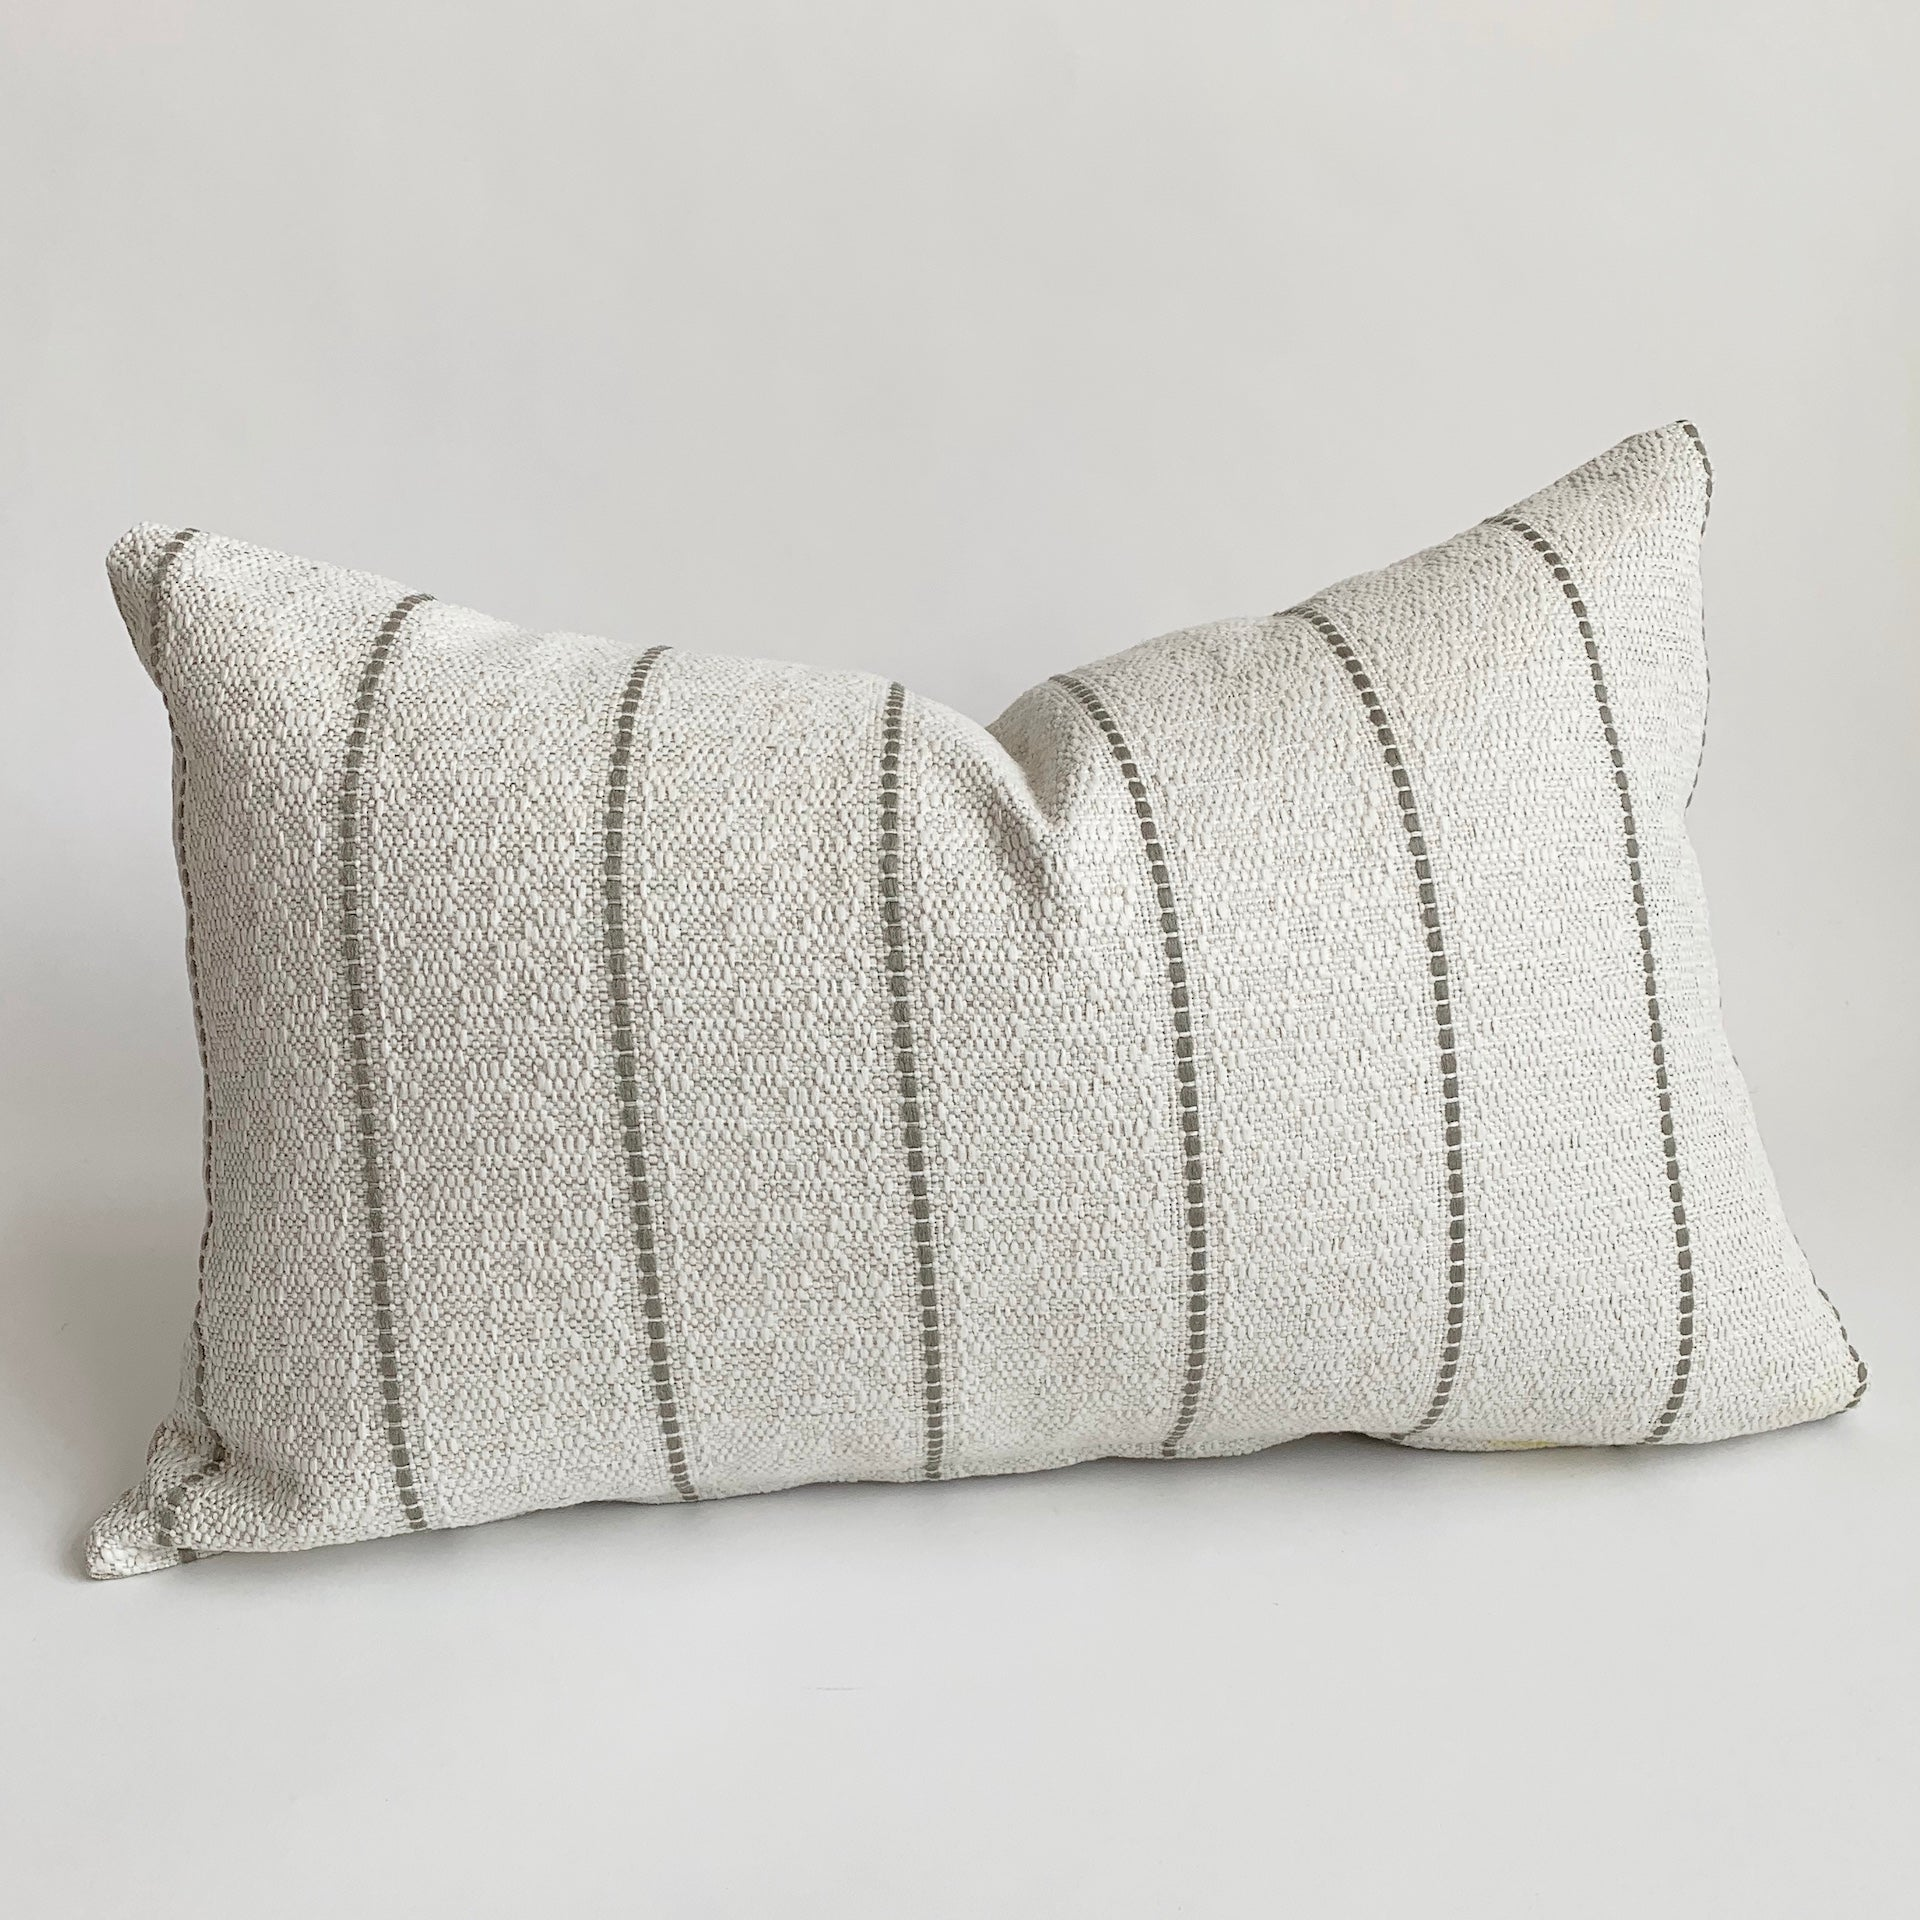 Blanca Lumbar Pillow $100